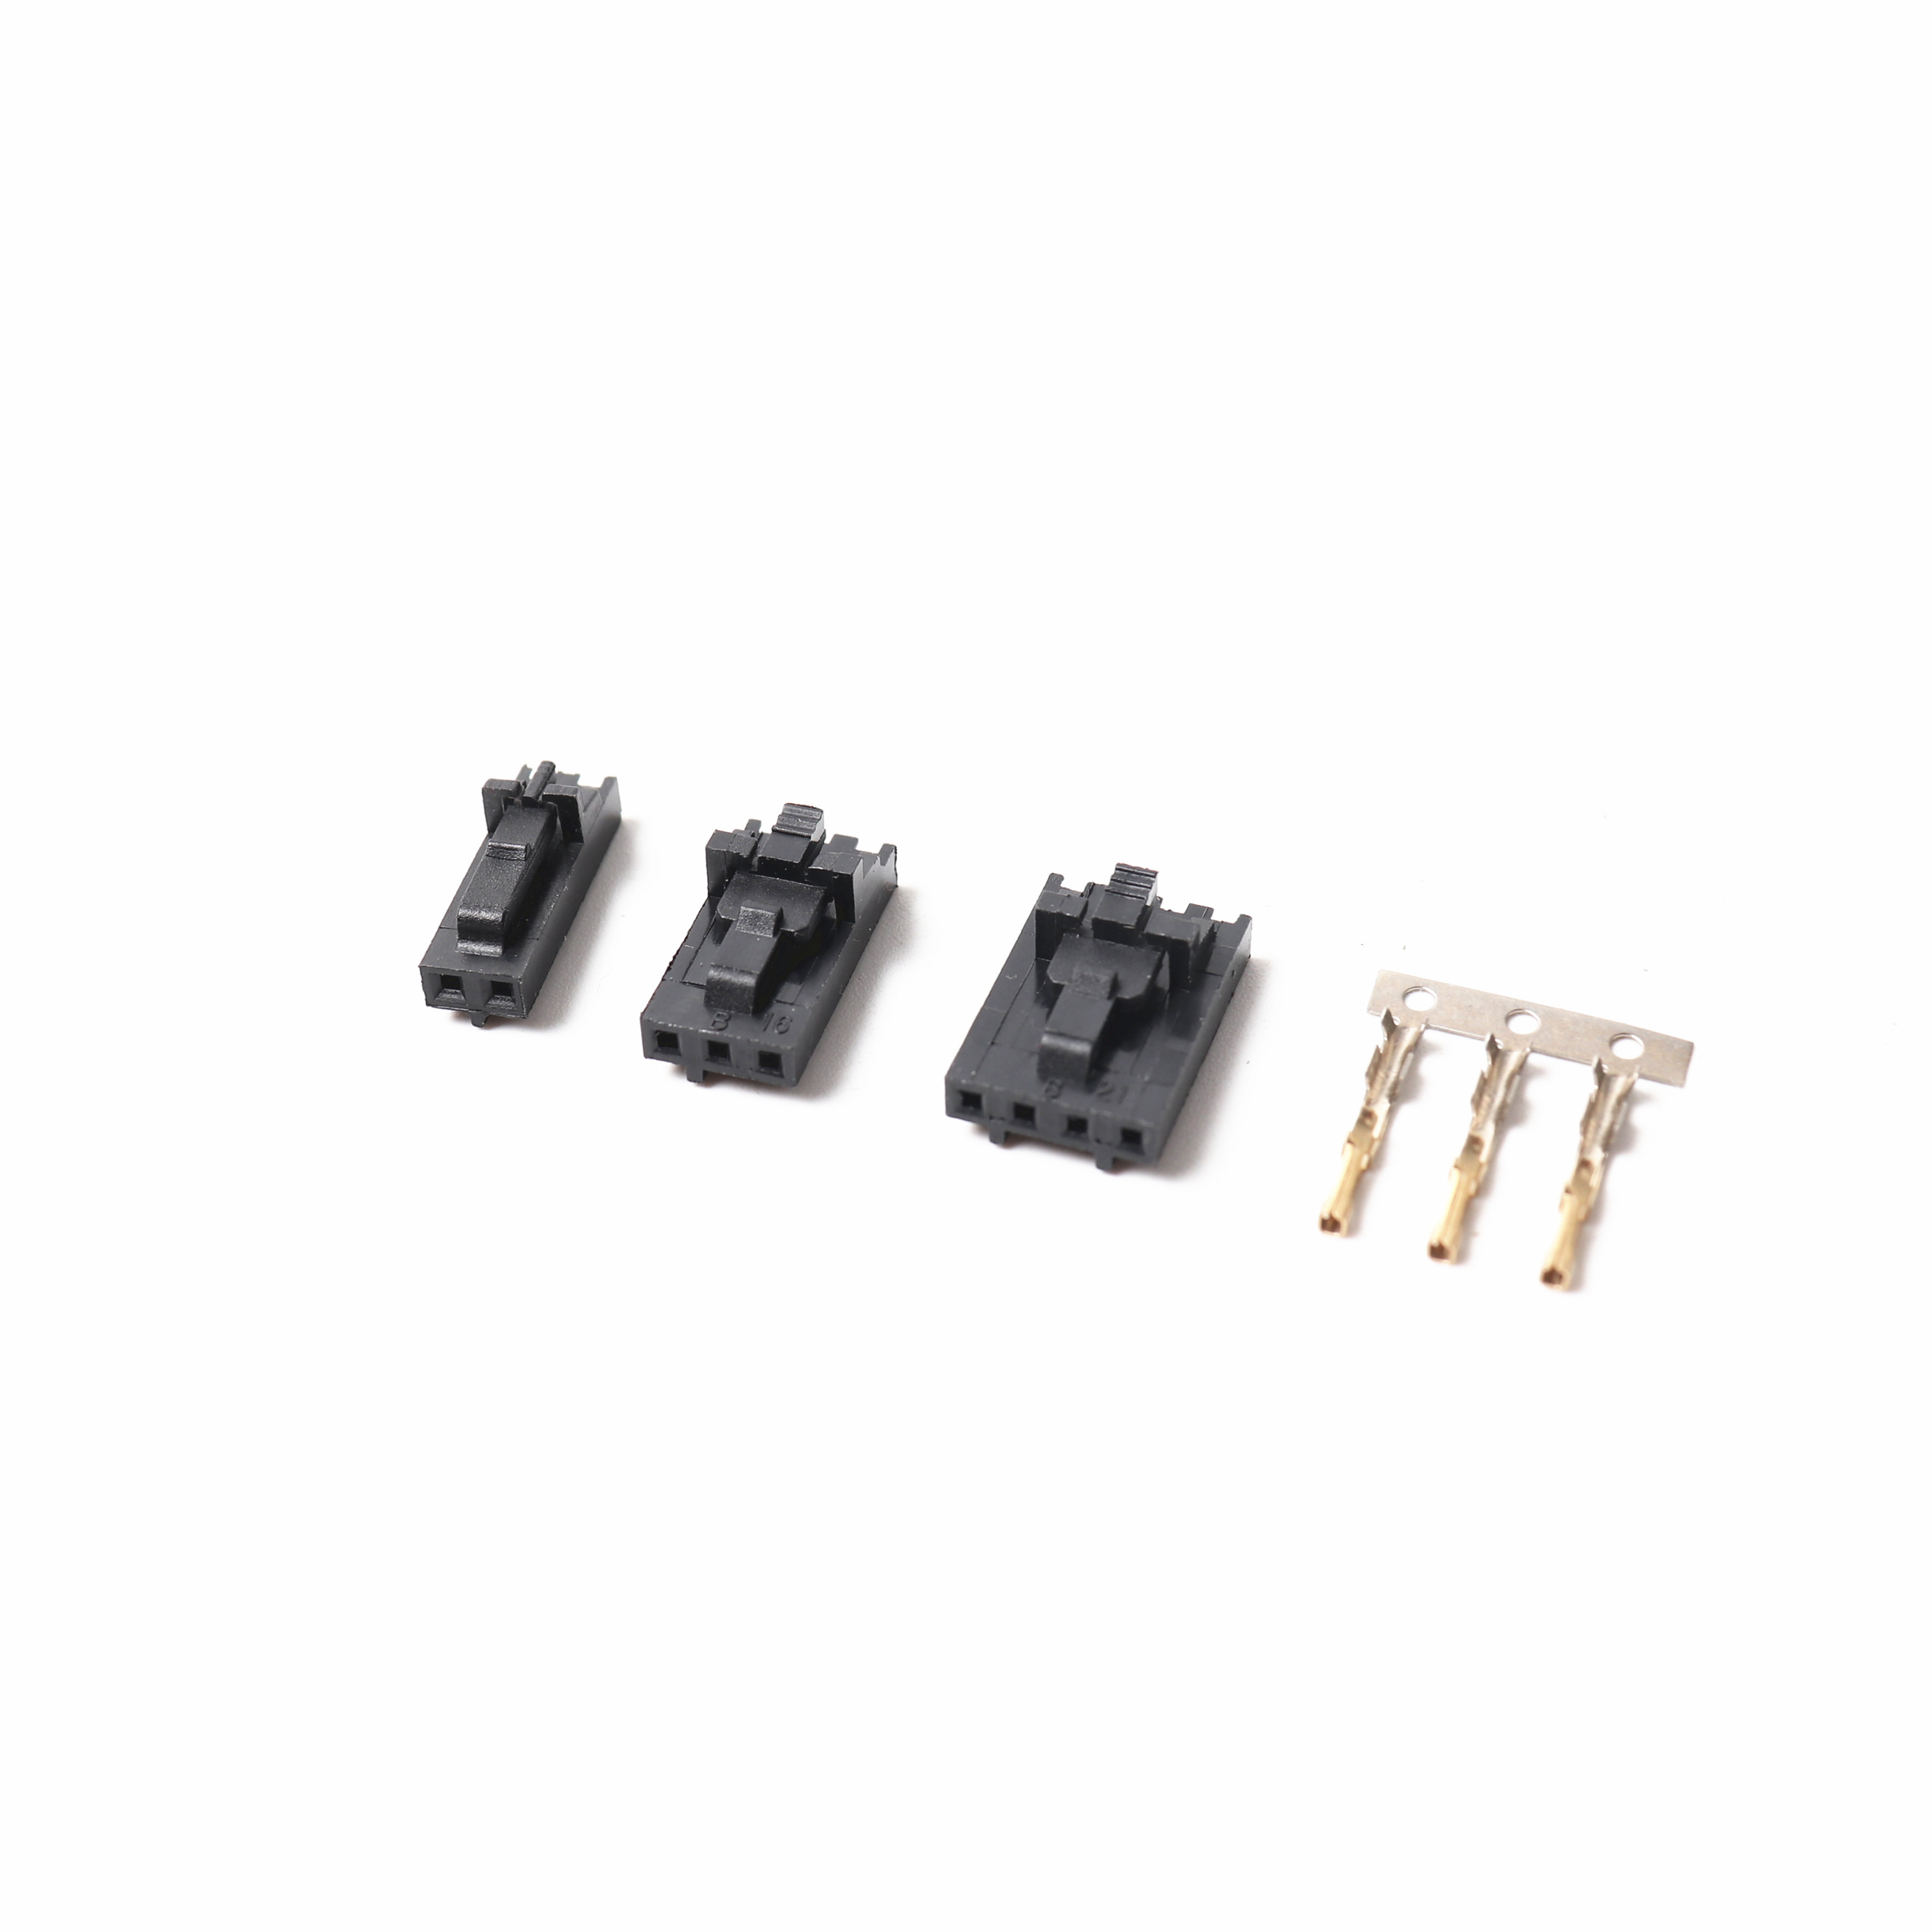 2.54mm 1x2/1x3/1x4 Connector & Positive Latch Housing Kit  10 pack for Mini rambo/Einsy Rambo boards and Prusa i3 mk2s/mk3|3D Printer Parts & Accessories|   - AliExpress